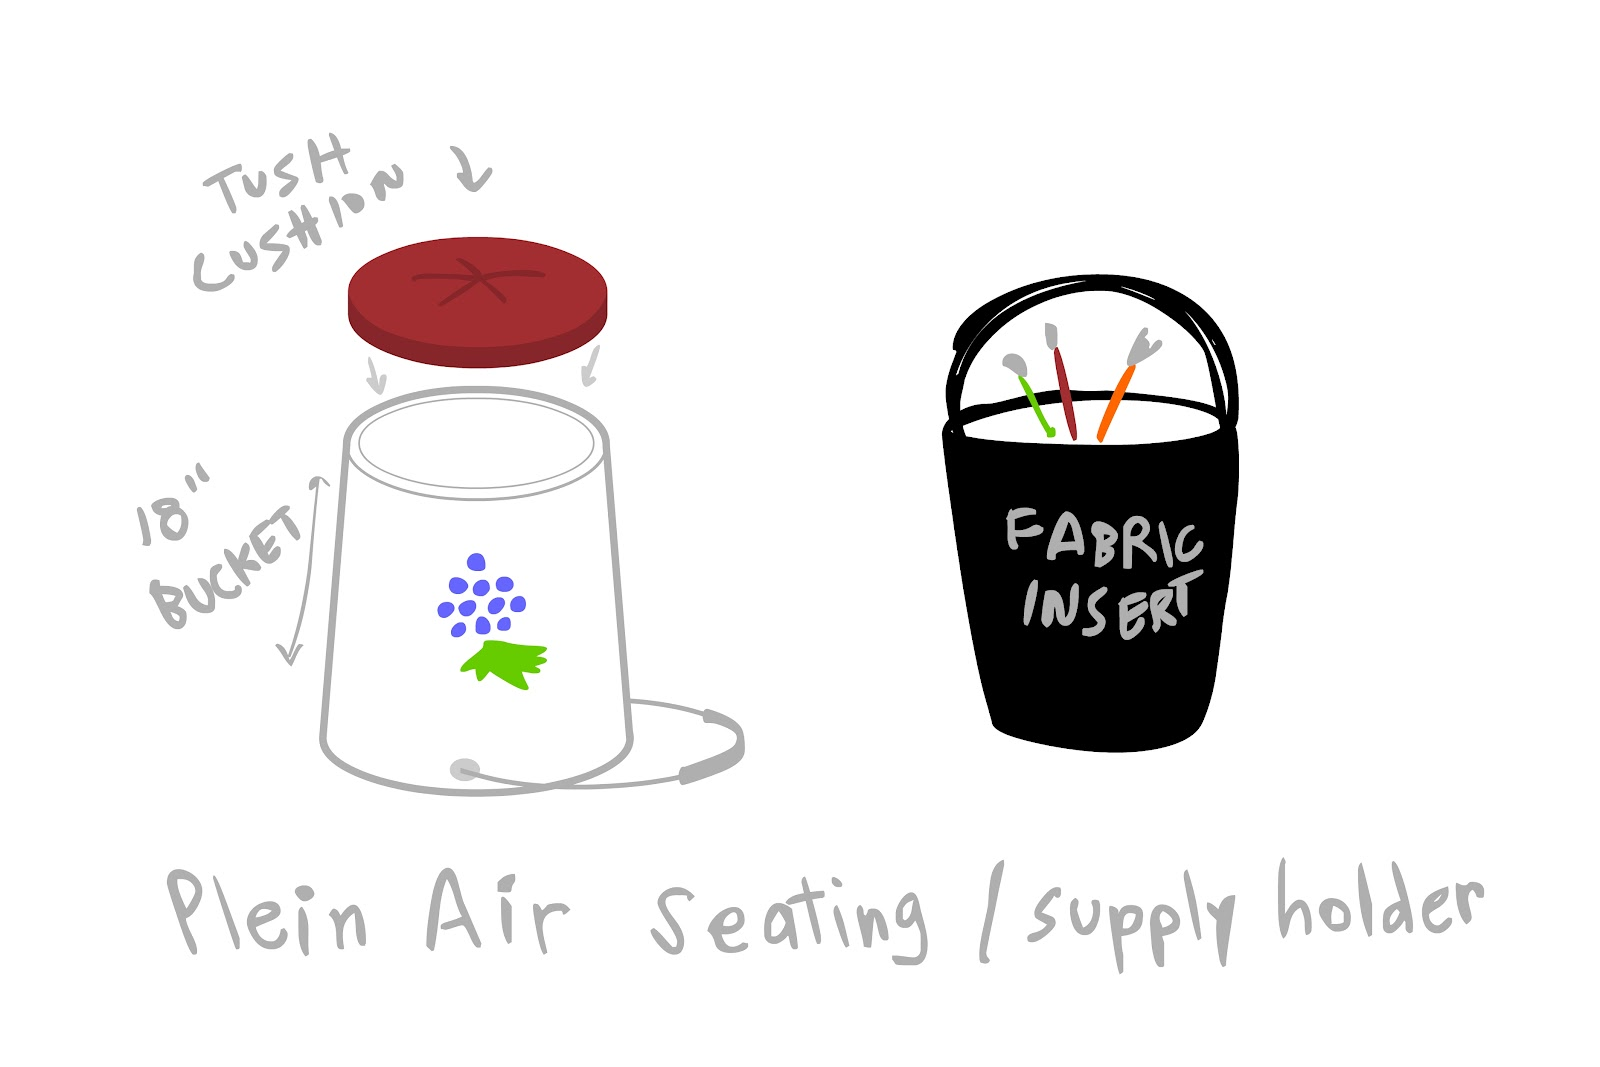 M Patrizio Paintings Sketches Bucket Seating For Plein